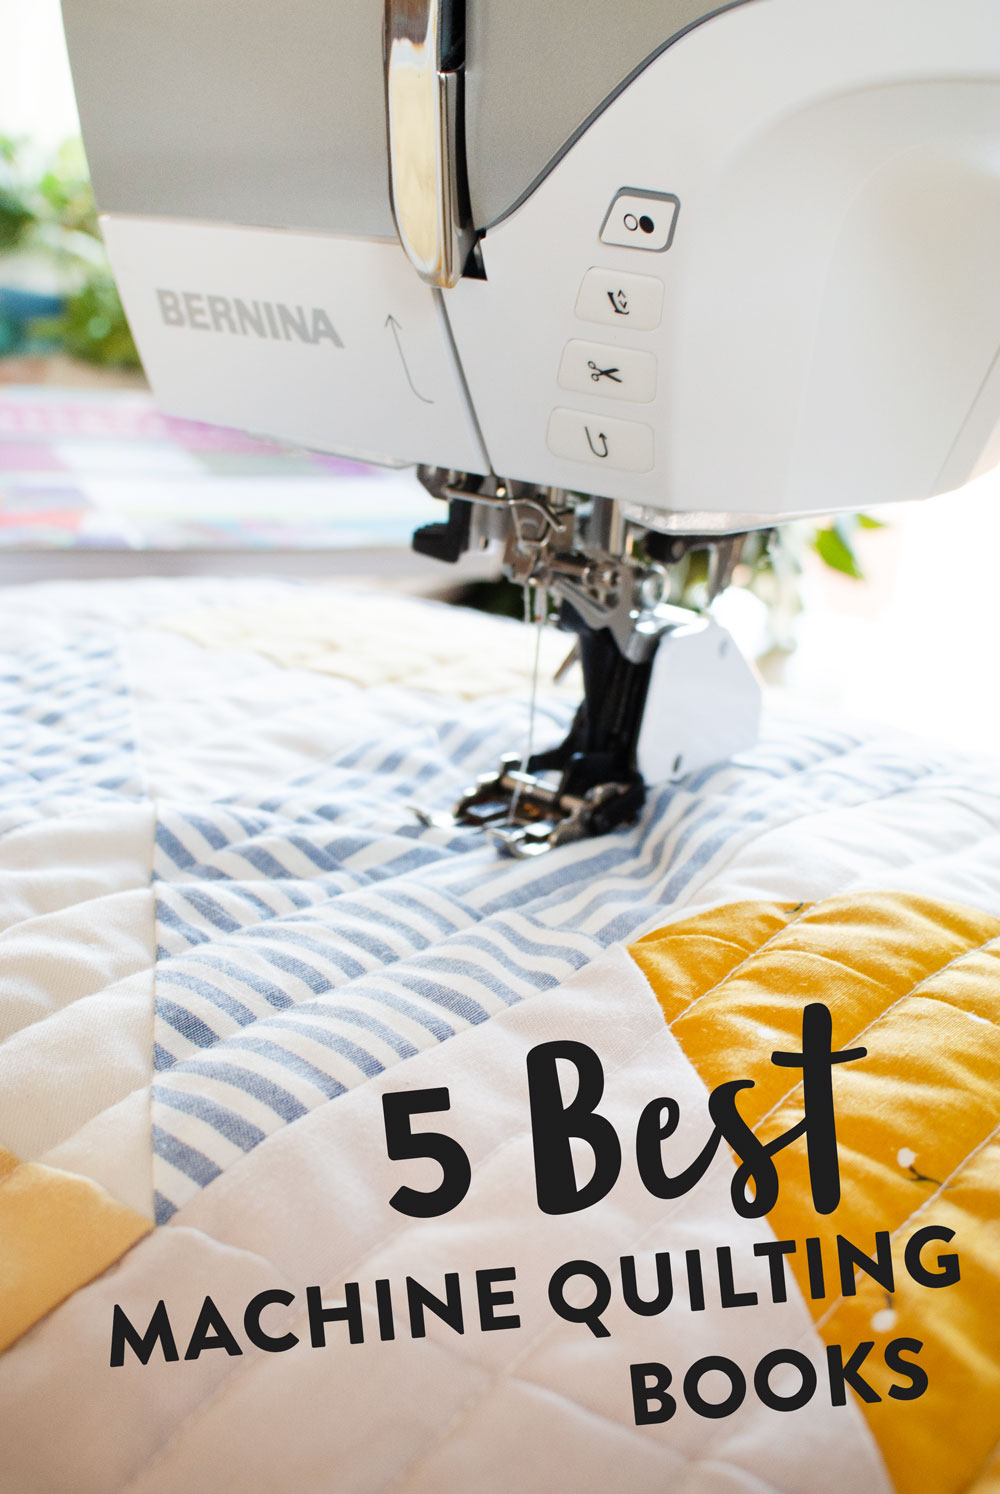 The 5 Best Machine Quilting books to help you jumpstart your skills and allow you to quilt like a pro on your domestic sewing machine at home!